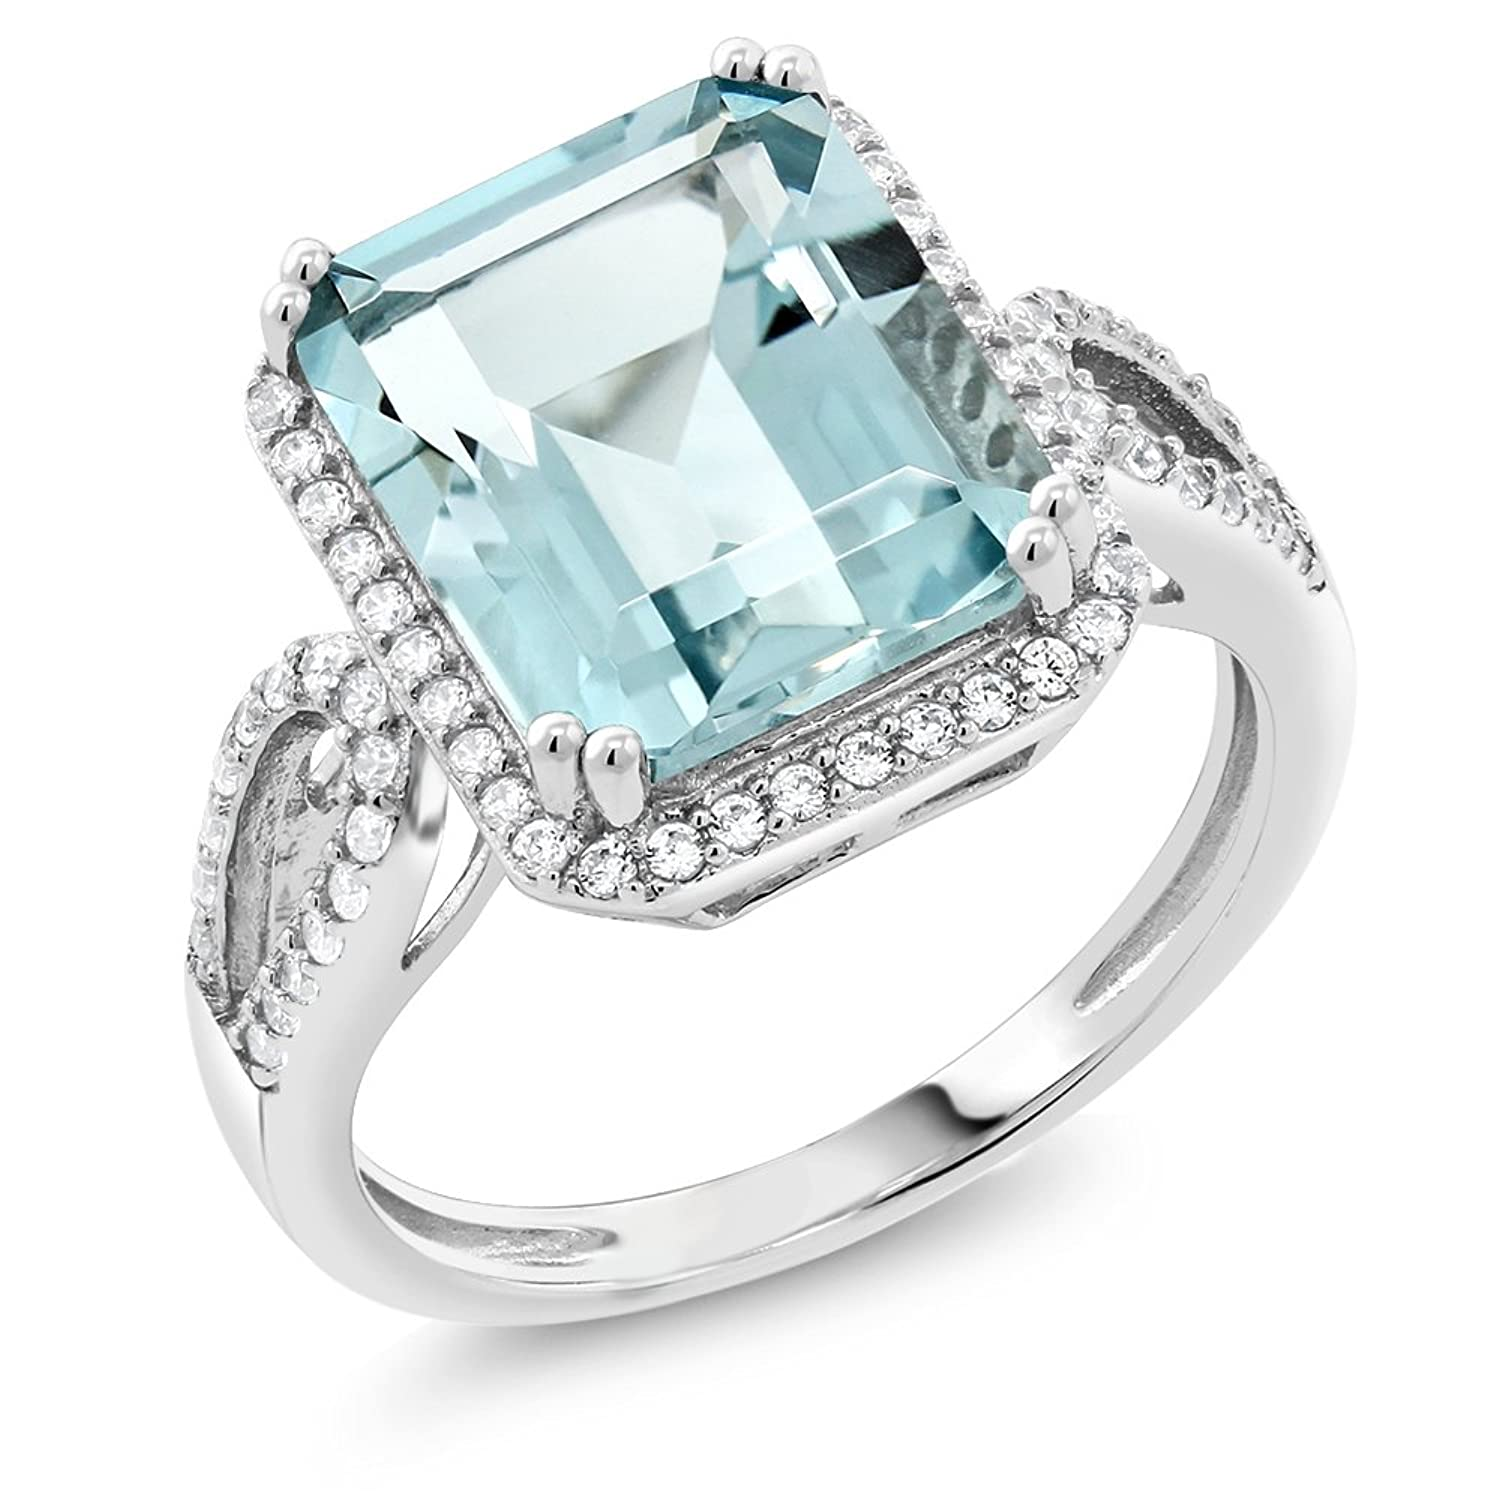 5.00 Ct Antique Women's 925 Sterling Silver Octagon Cut Created Aquamarine Ring (Available in size 5, 6, 7, 8, 9)